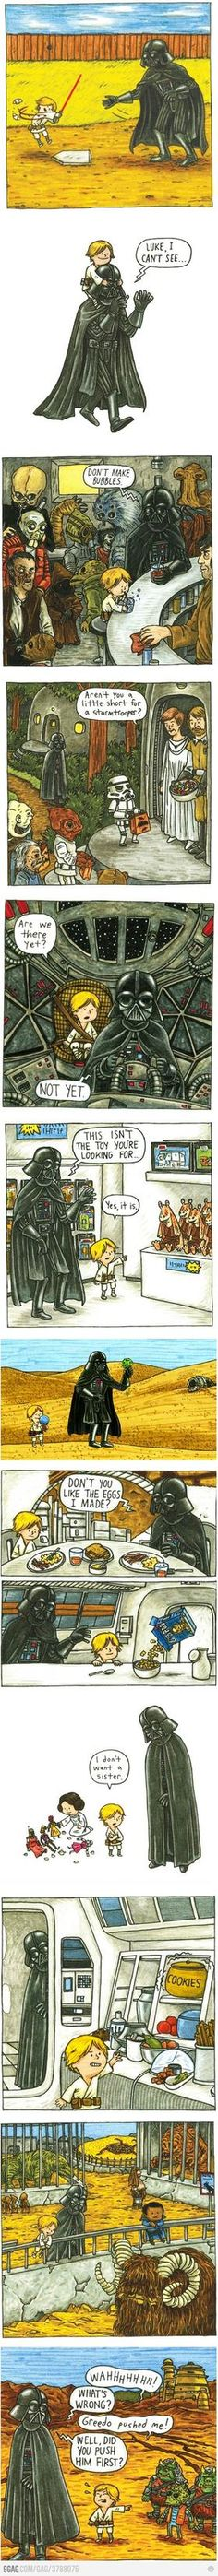 Vader and son I love this book!